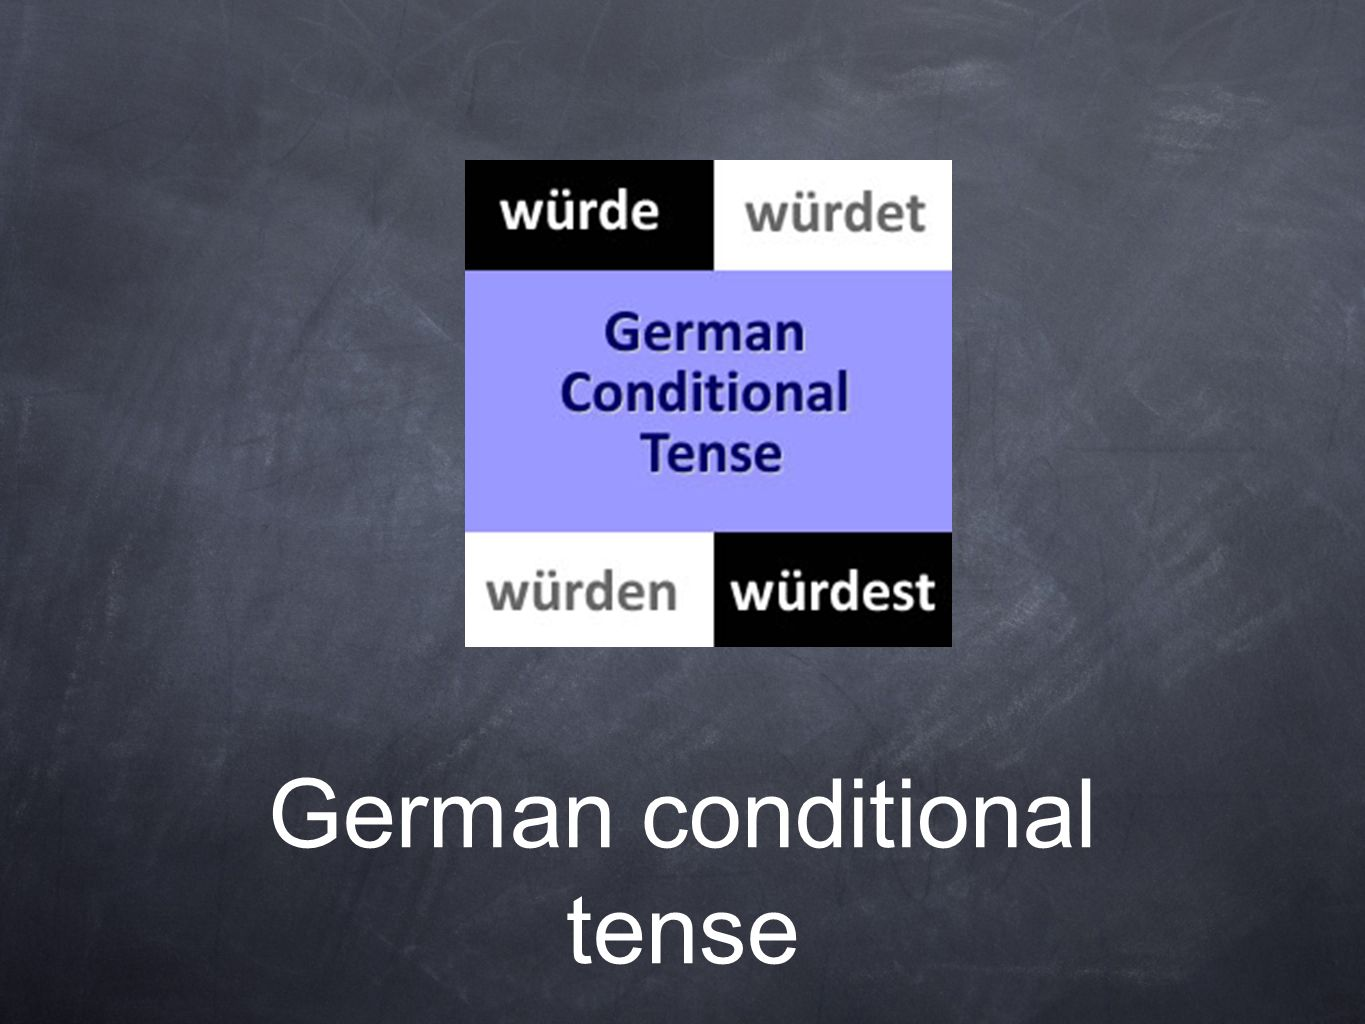 German conditional tense